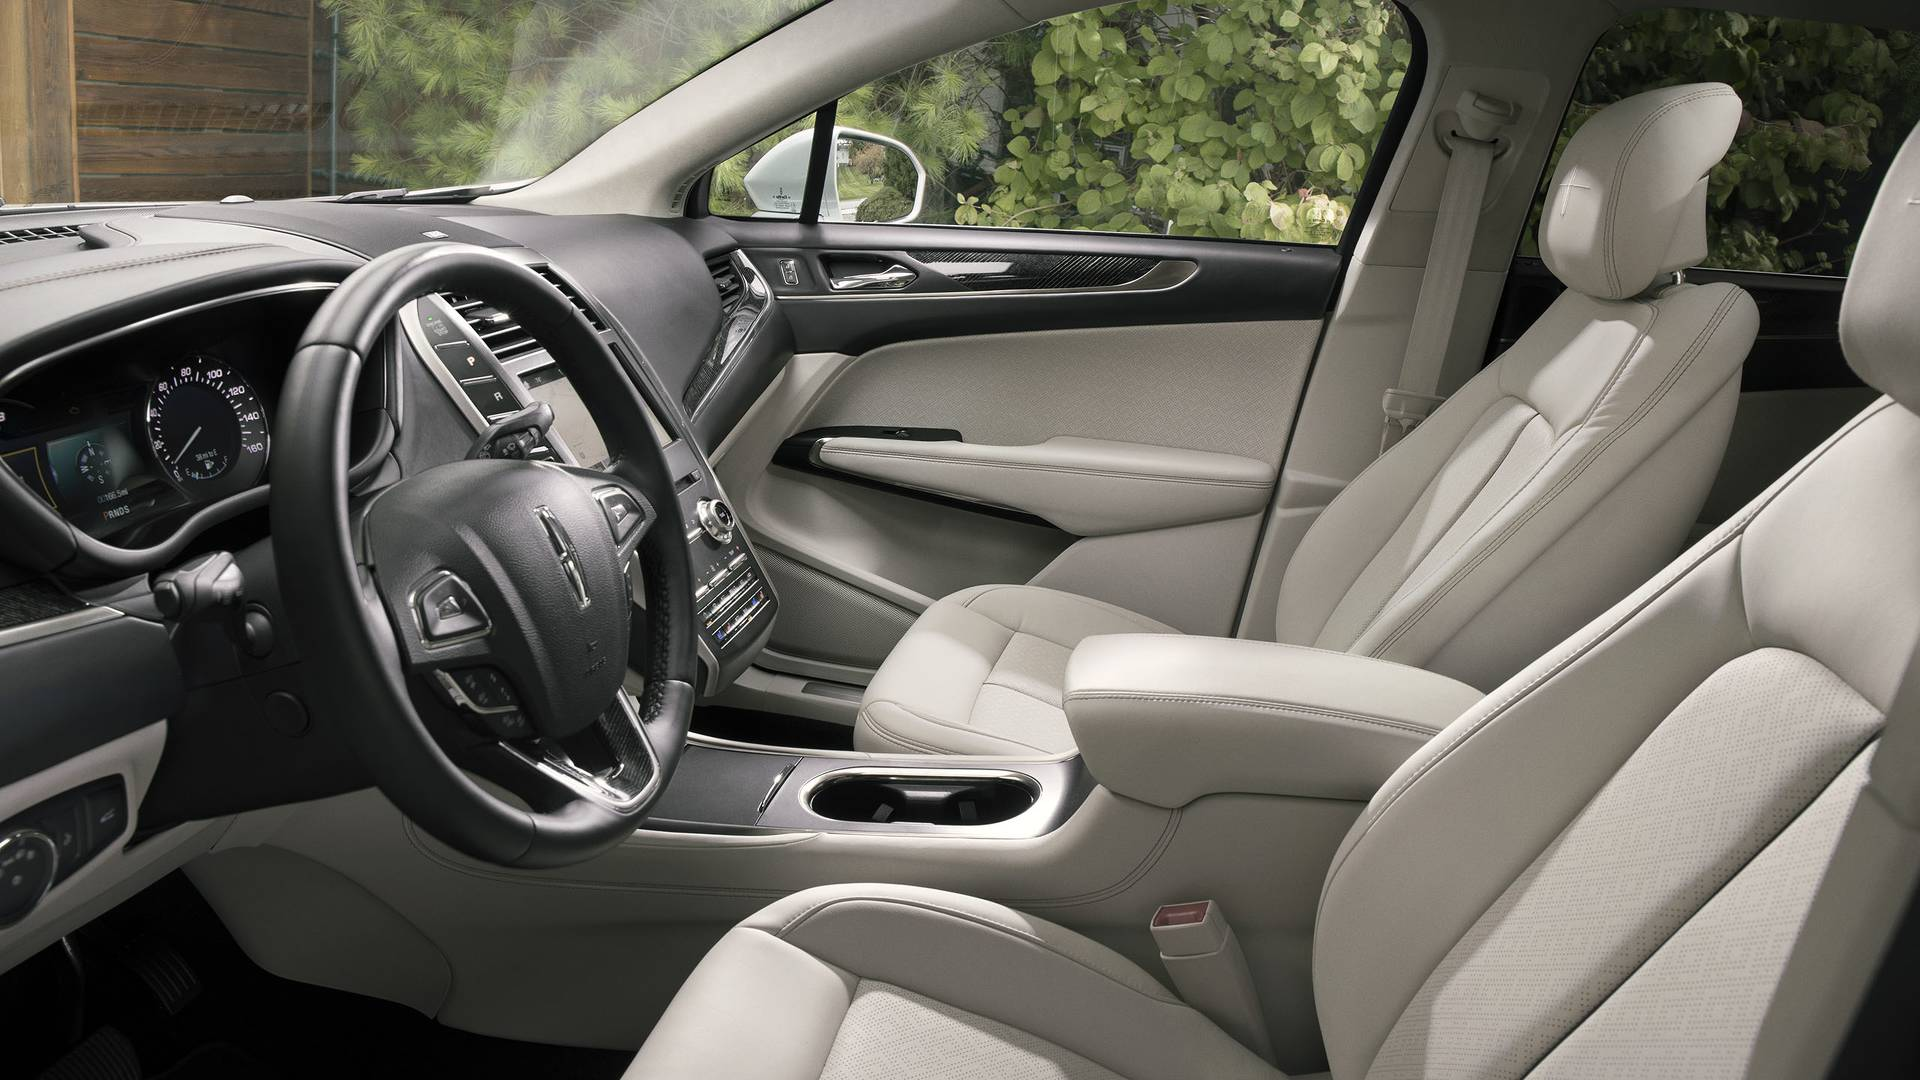 Lincoln Nautilus Price >> 2019 Lincoln MKC Priced $640 Higher, Arriving At Dealers This Summer - autoevolution